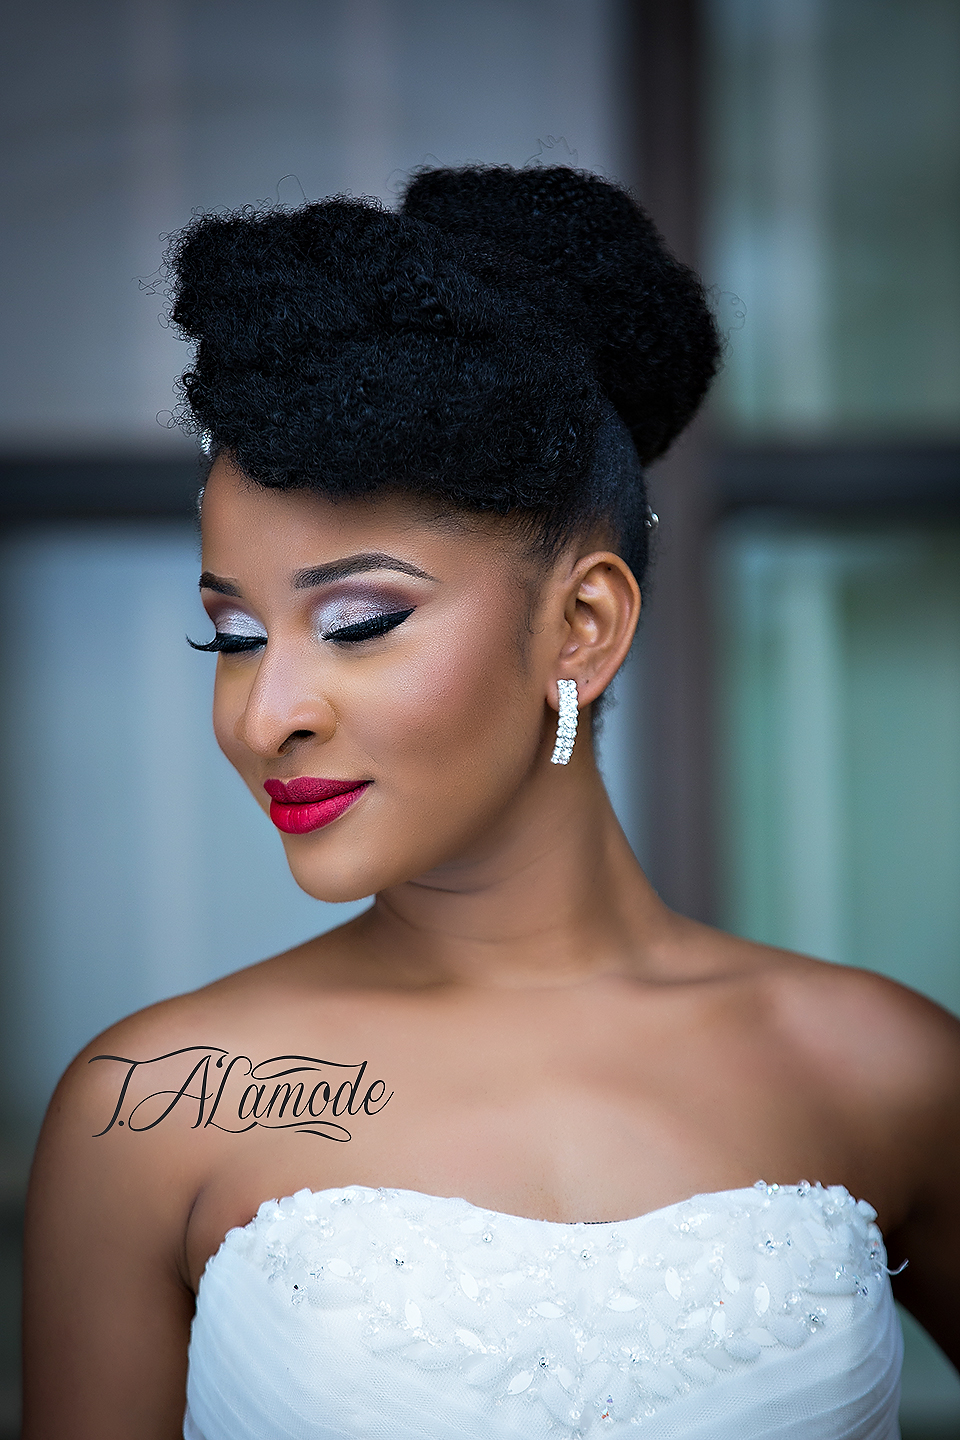 naturals hair styles striking hair looks for the 2015 t alamode 6127